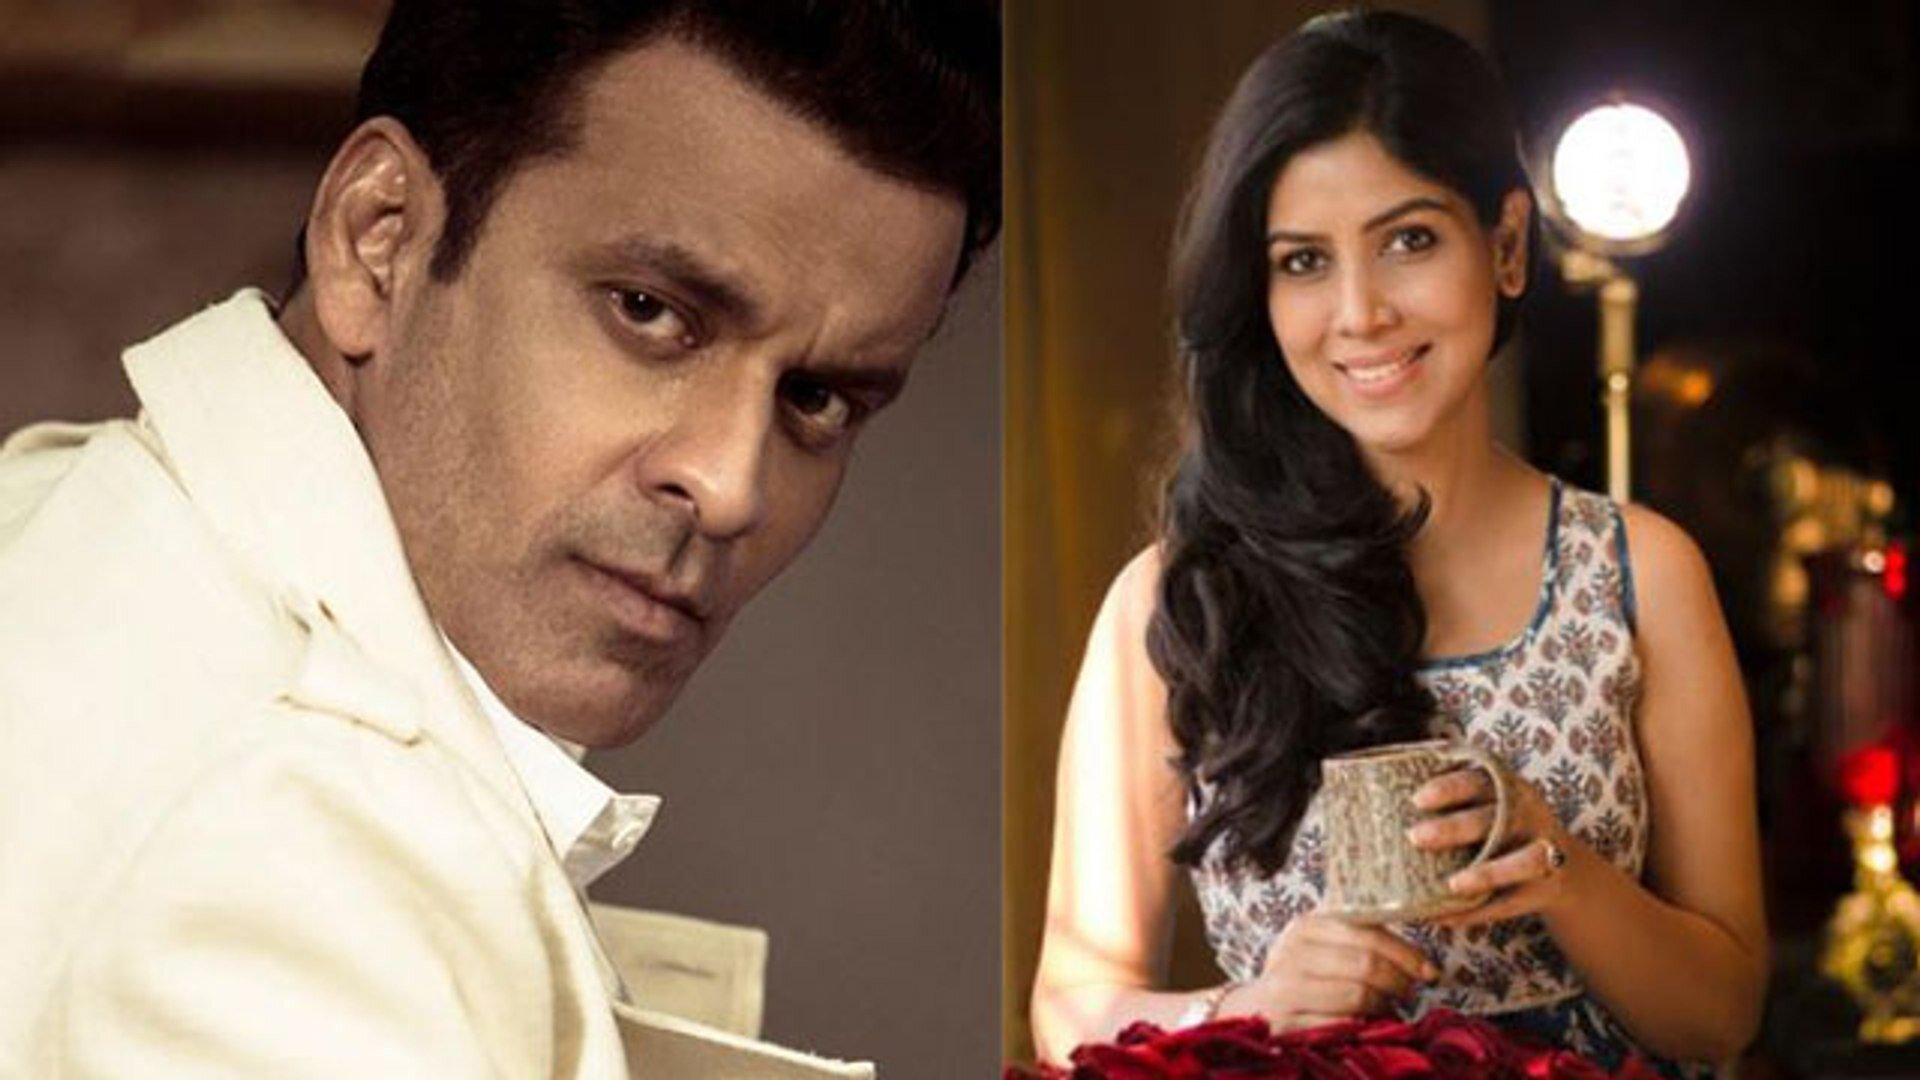 Did you know? Manoj Bajpayee directed Sakshi Tanwar in her debut show!